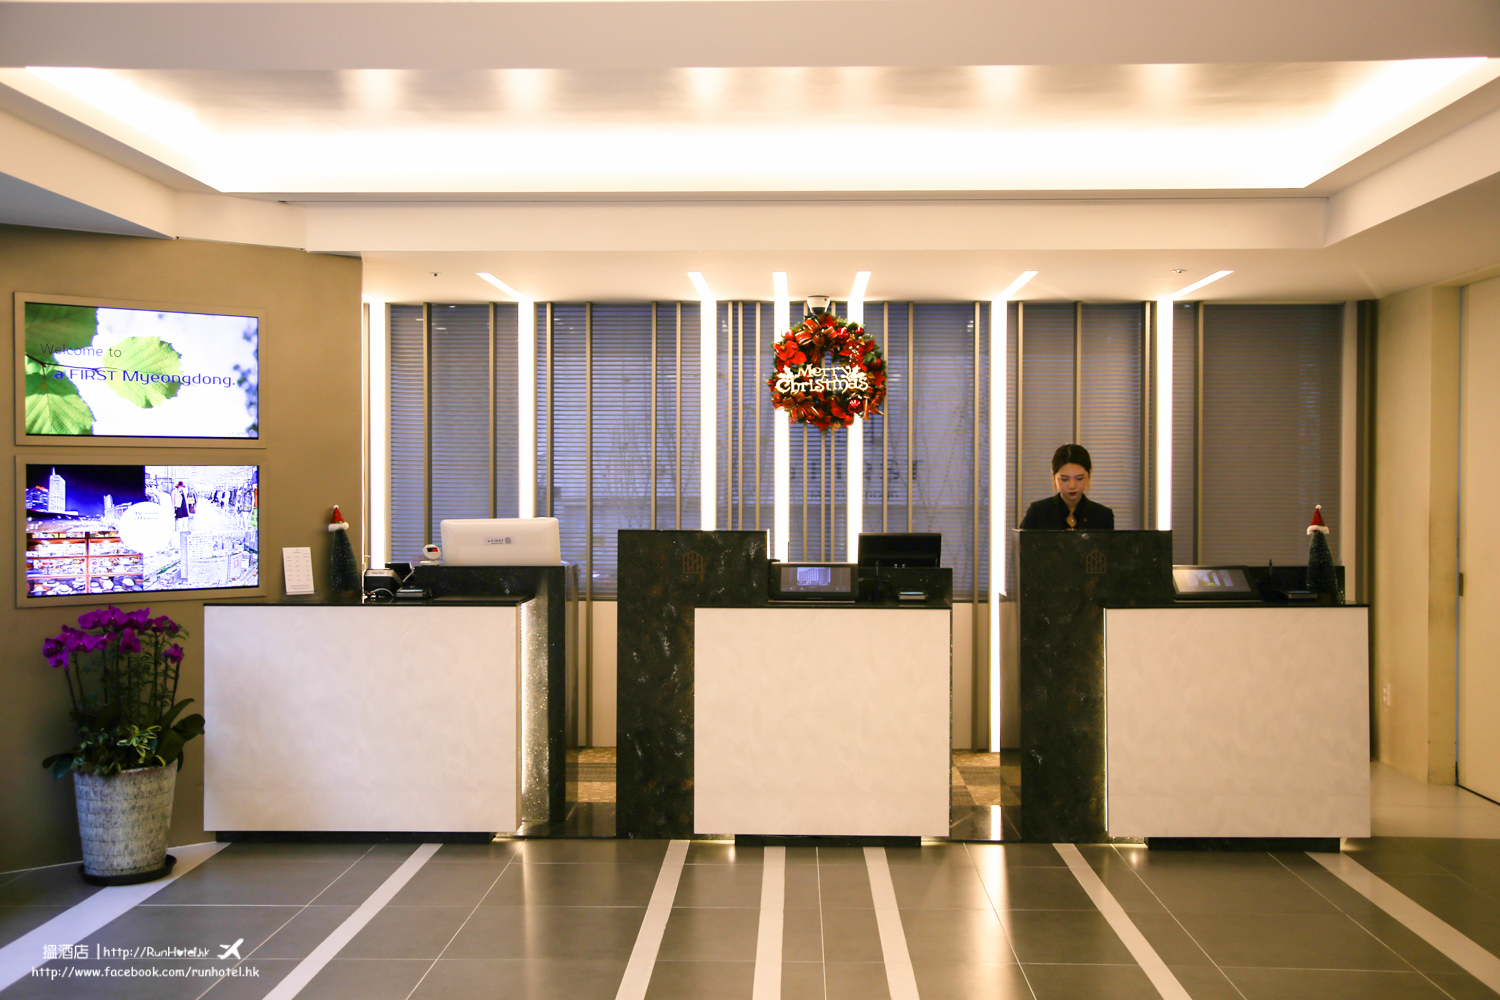 a-first-myeongdong-hotel-26